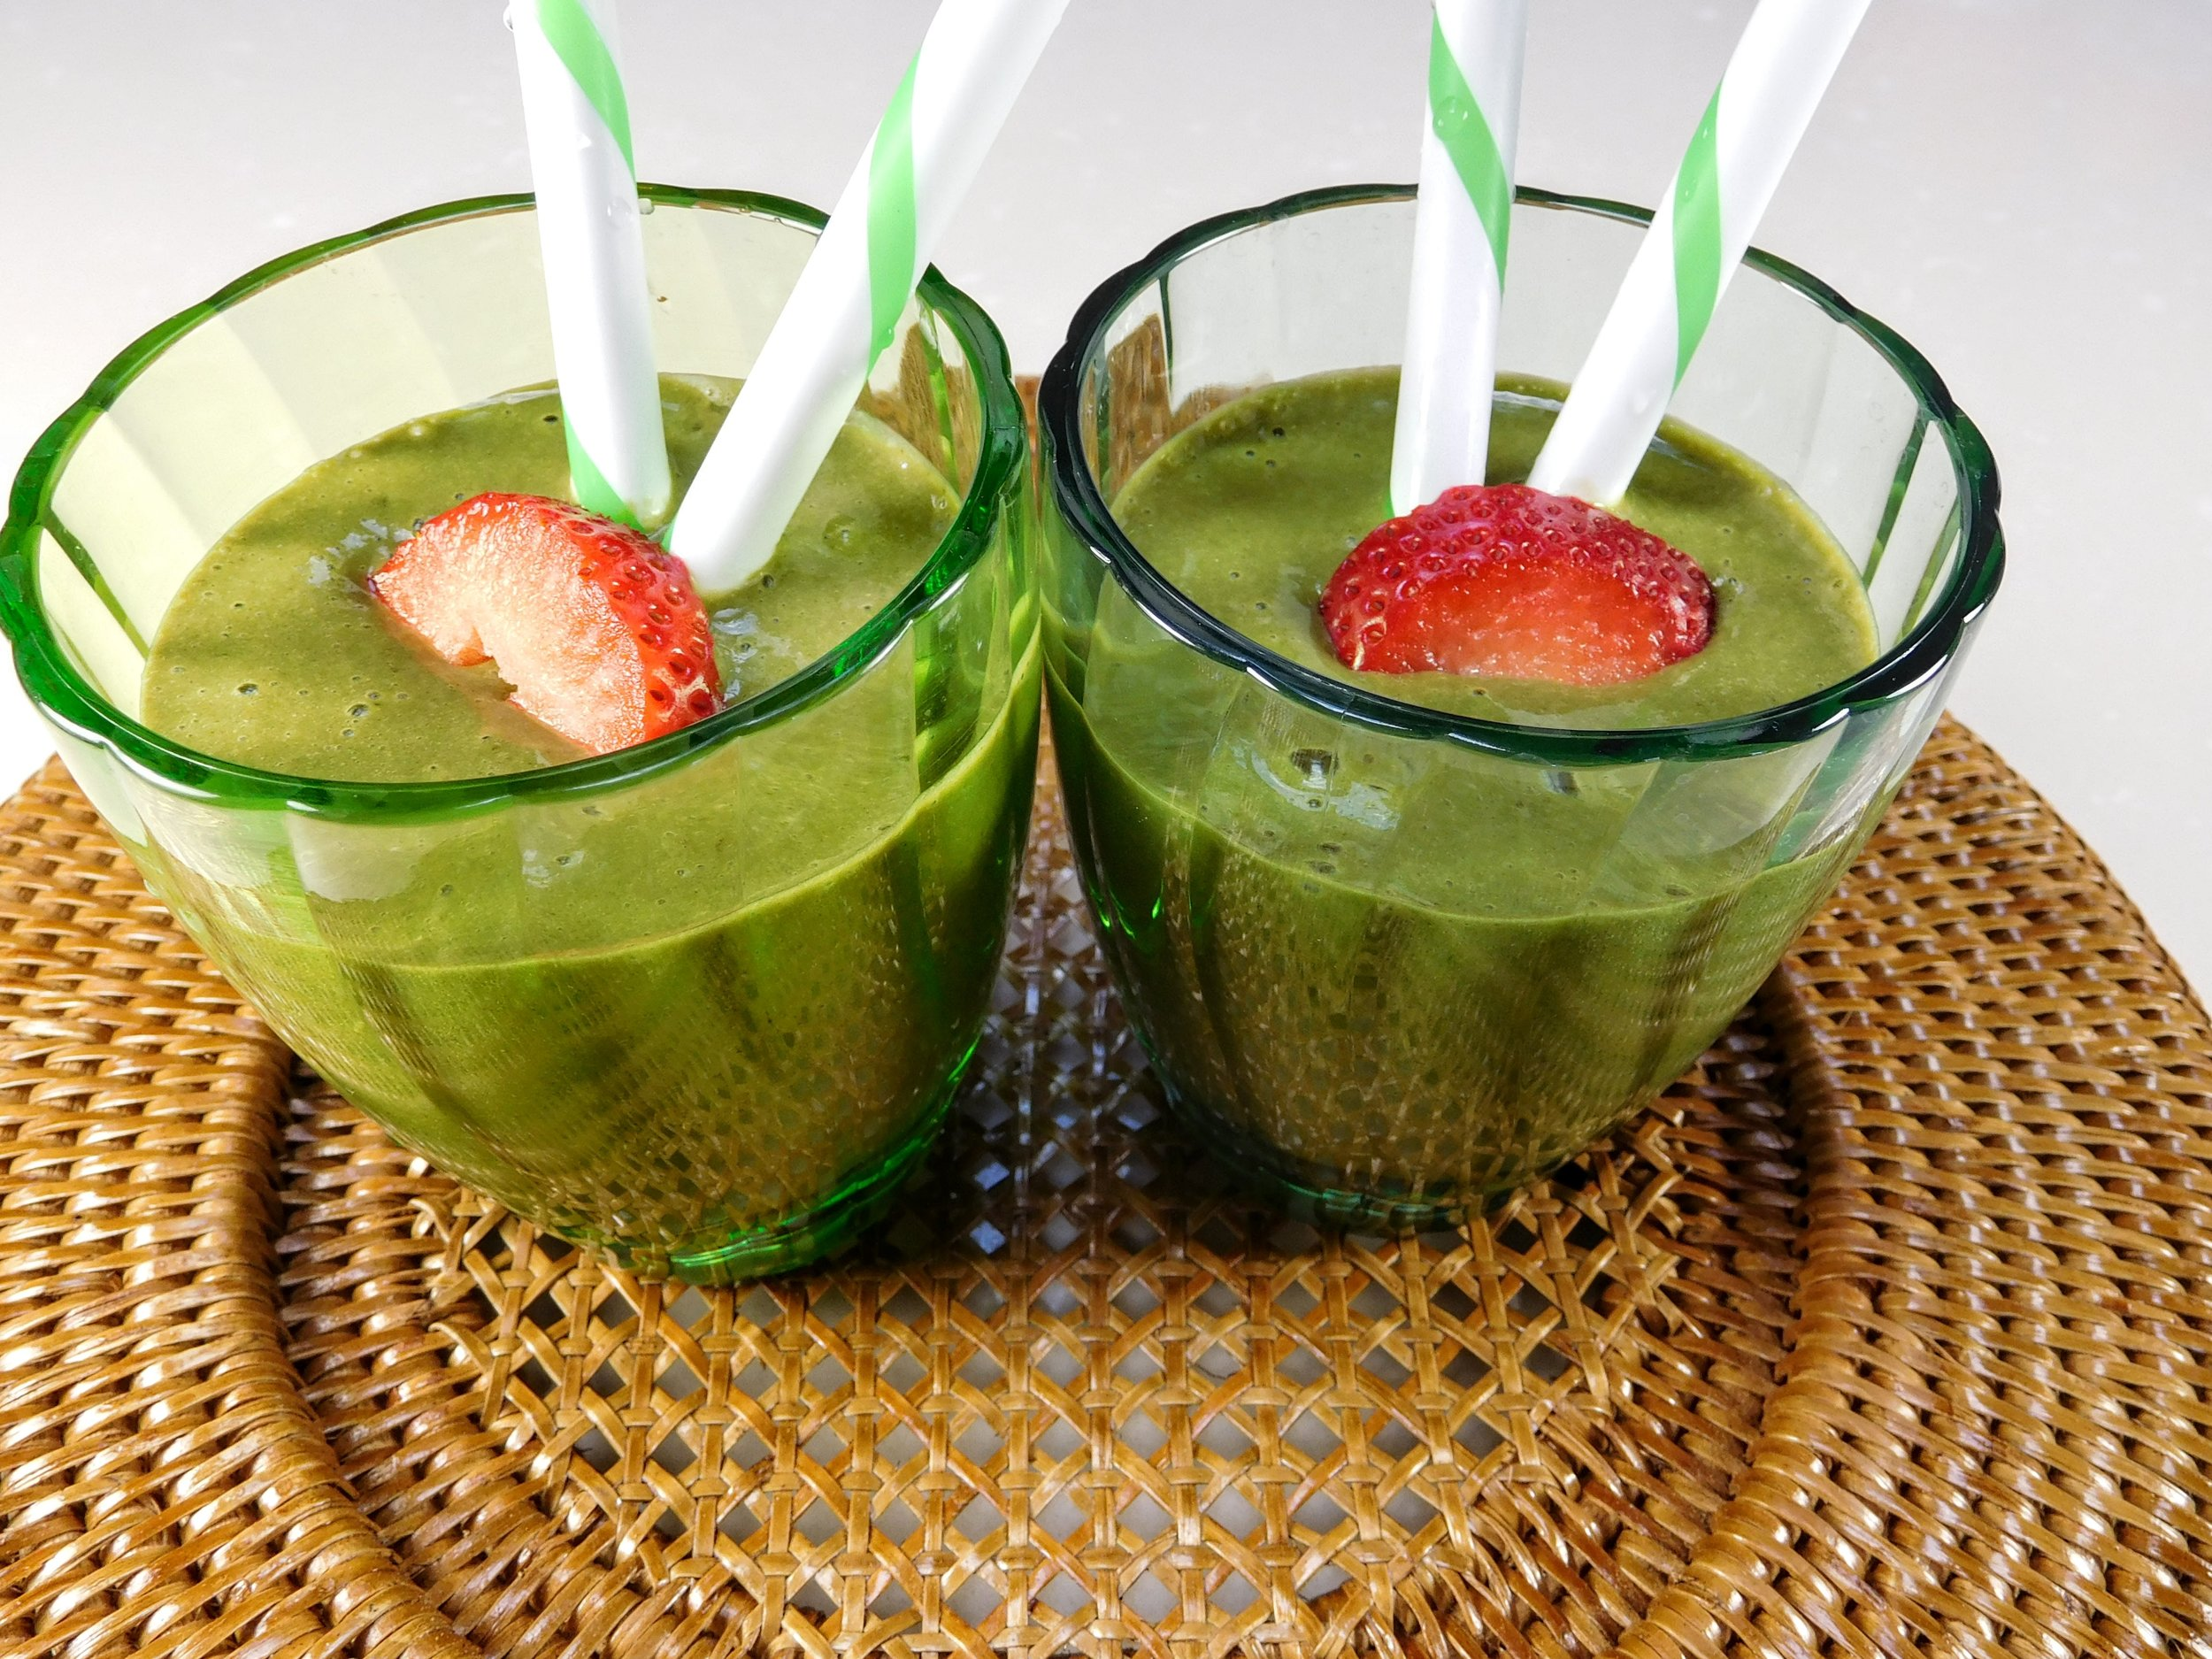 Strawberry + Banana Green Smoothie